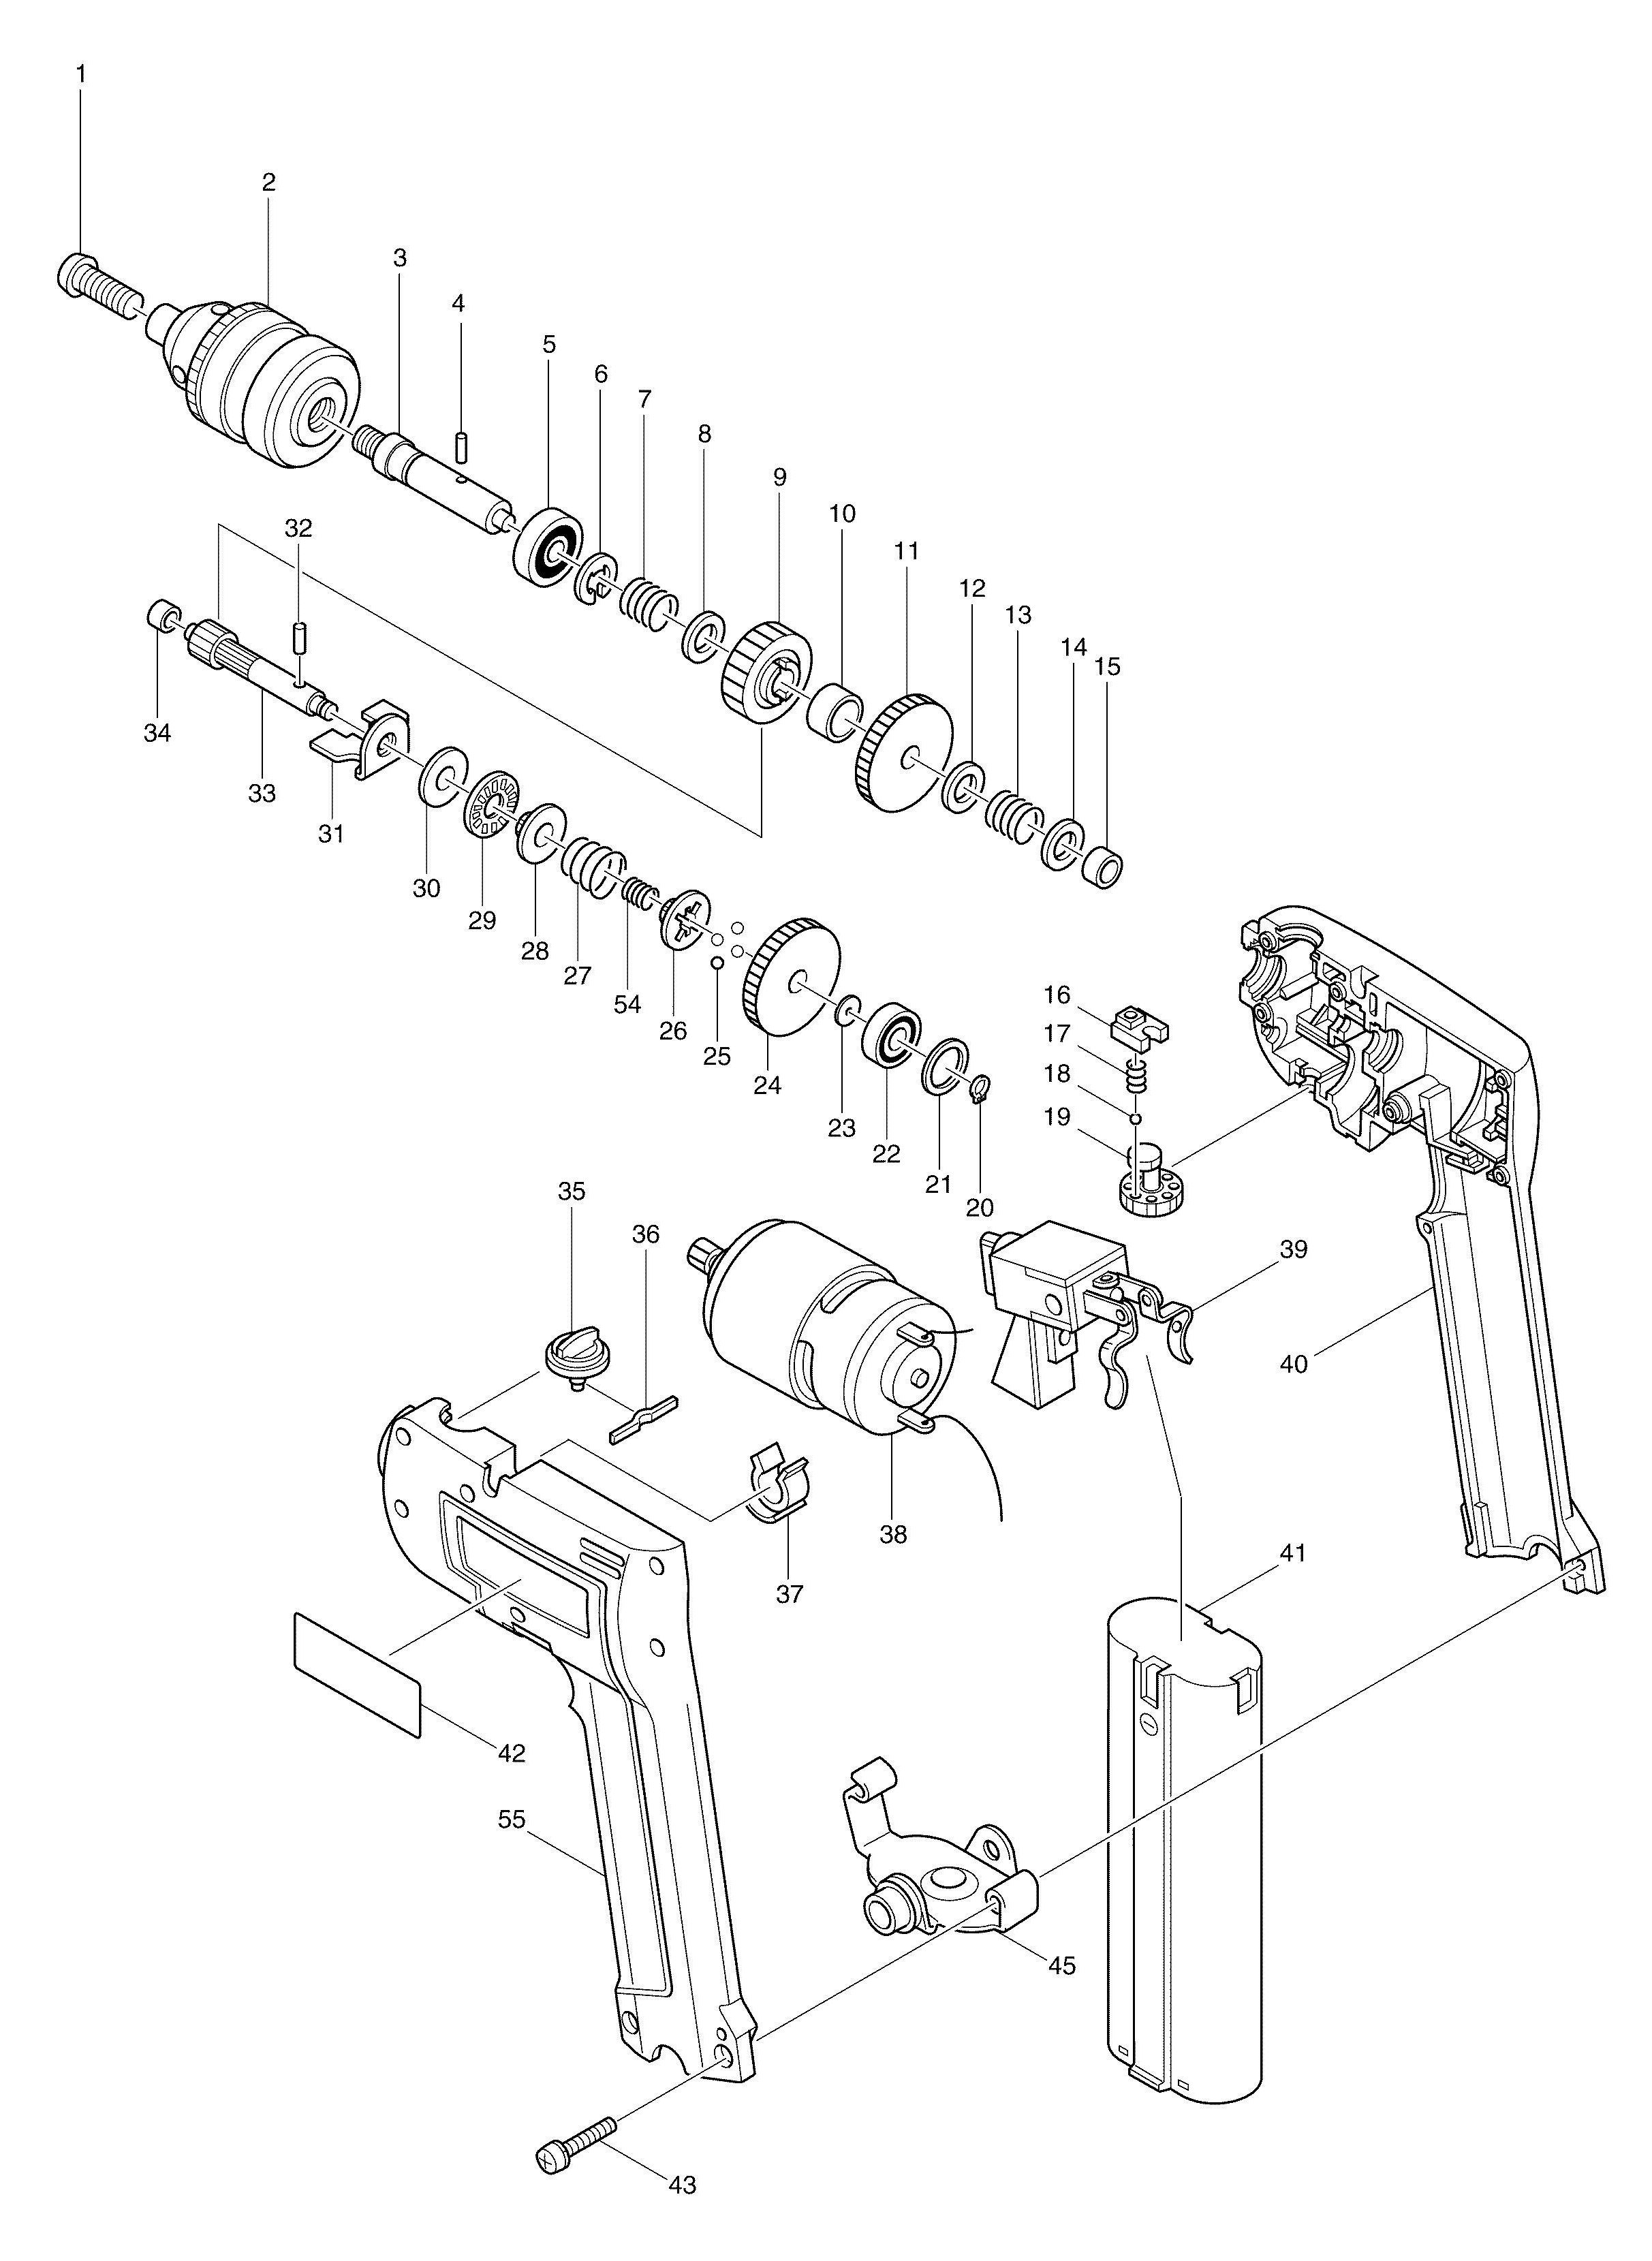 Spares for Makita 6012hd Drill/driver SPARE_6012HD from